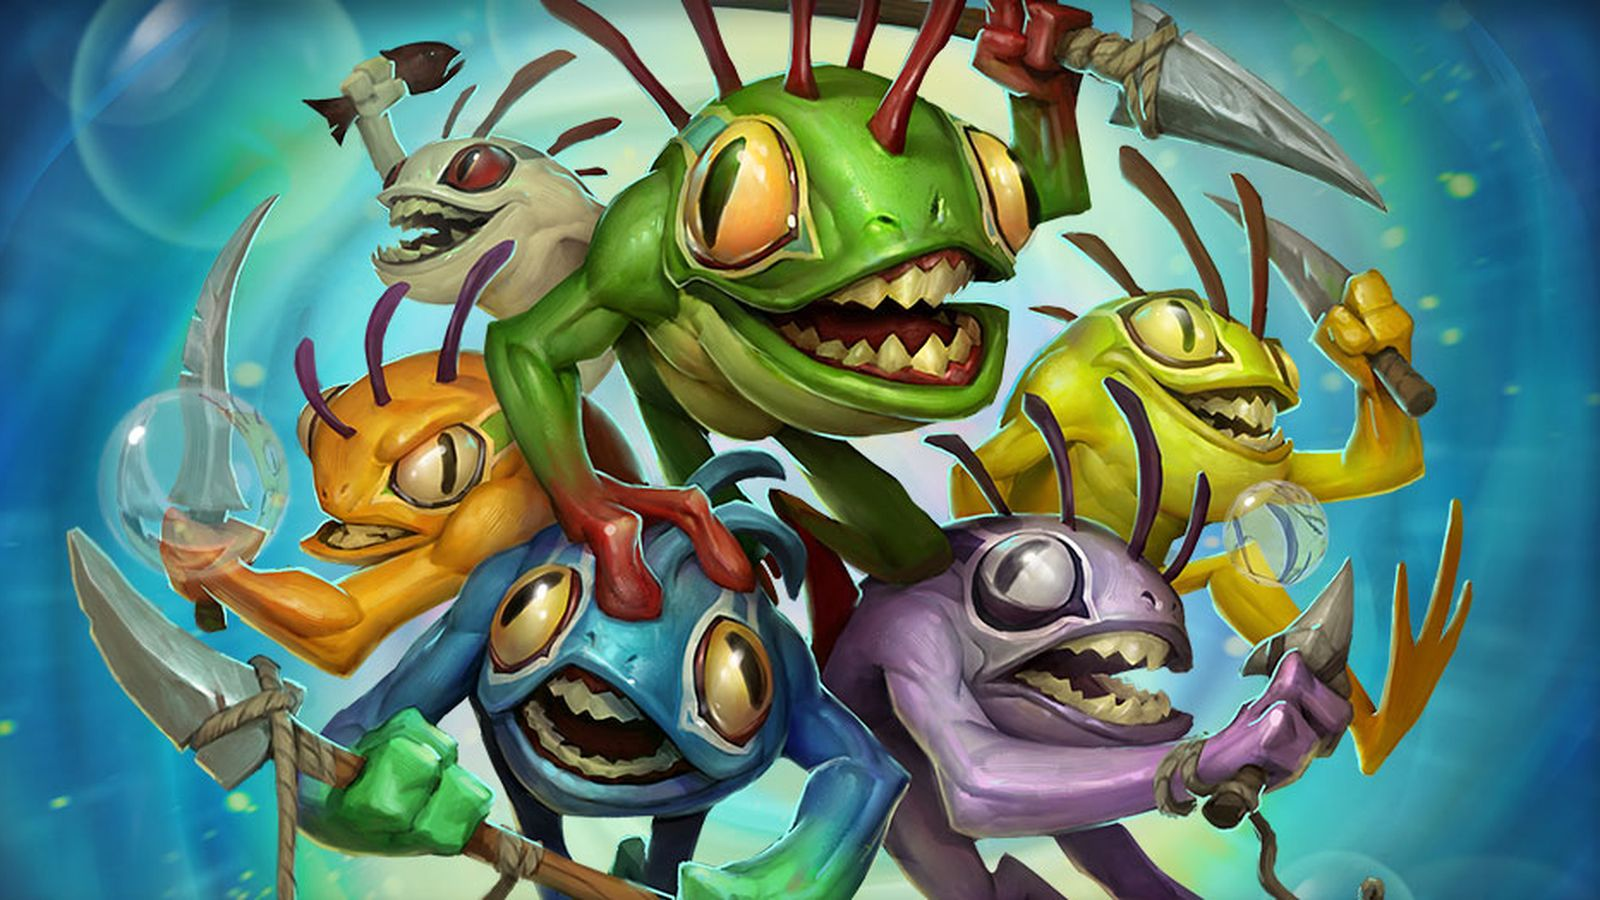 Hearthstone: Heroes of Warcraft Releases New Murloc When You Recruit A Friend | mxdwn Games